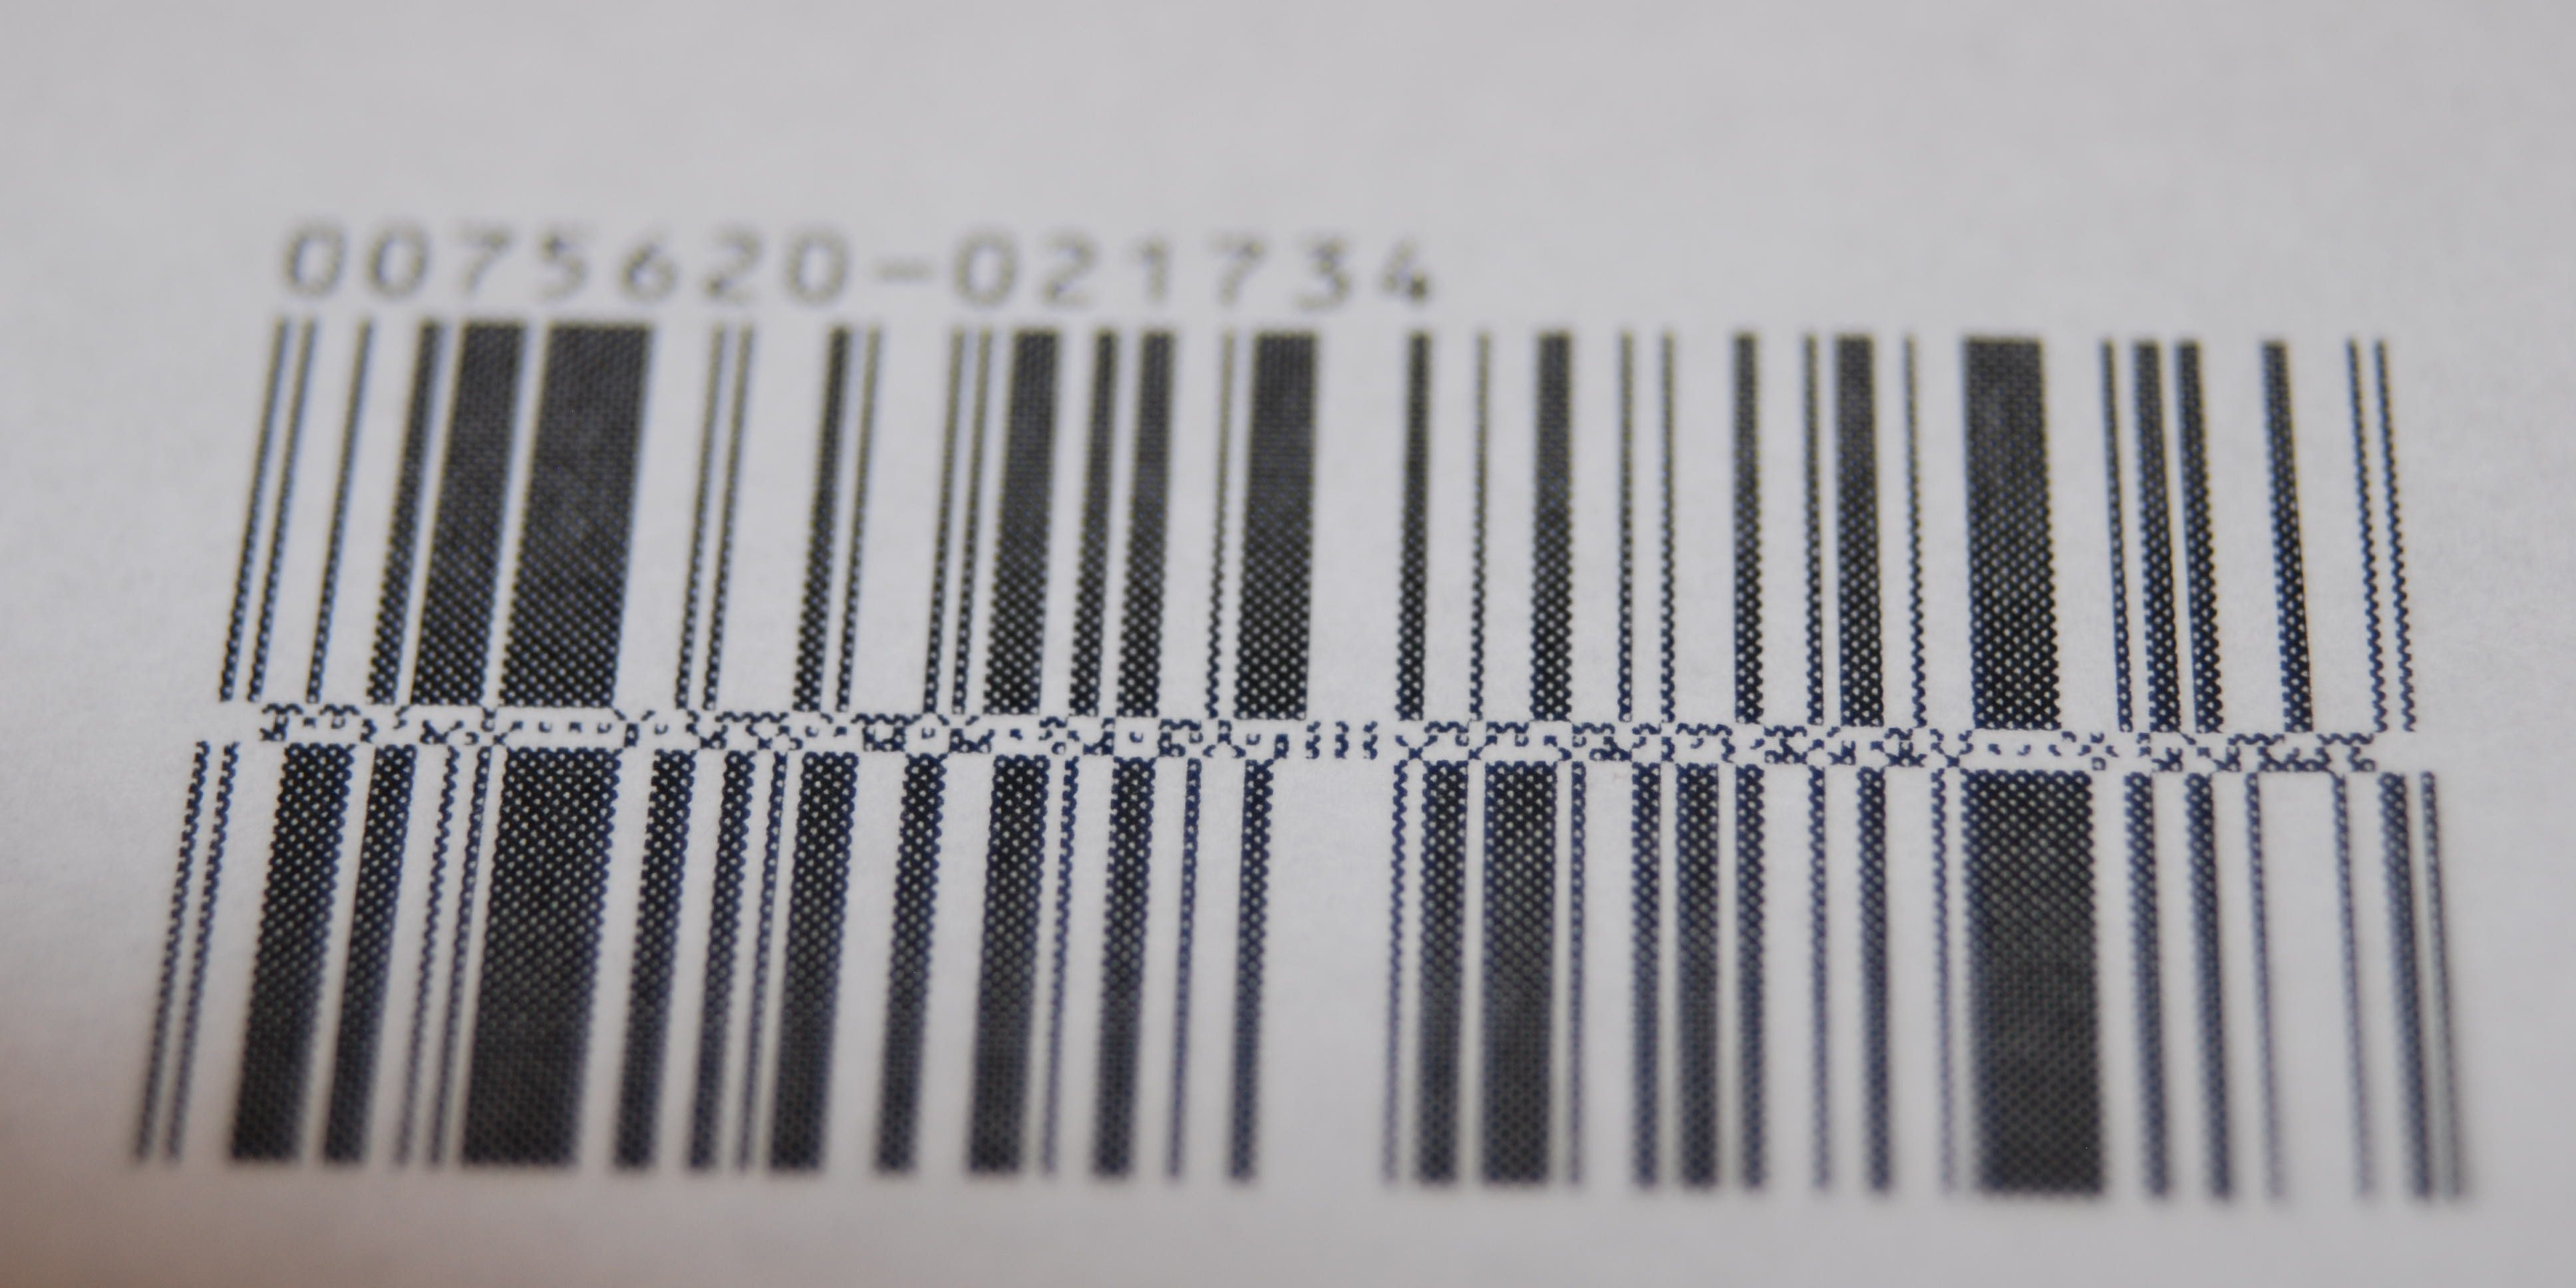 Bar Code Tester : The single most important barcode verification tool